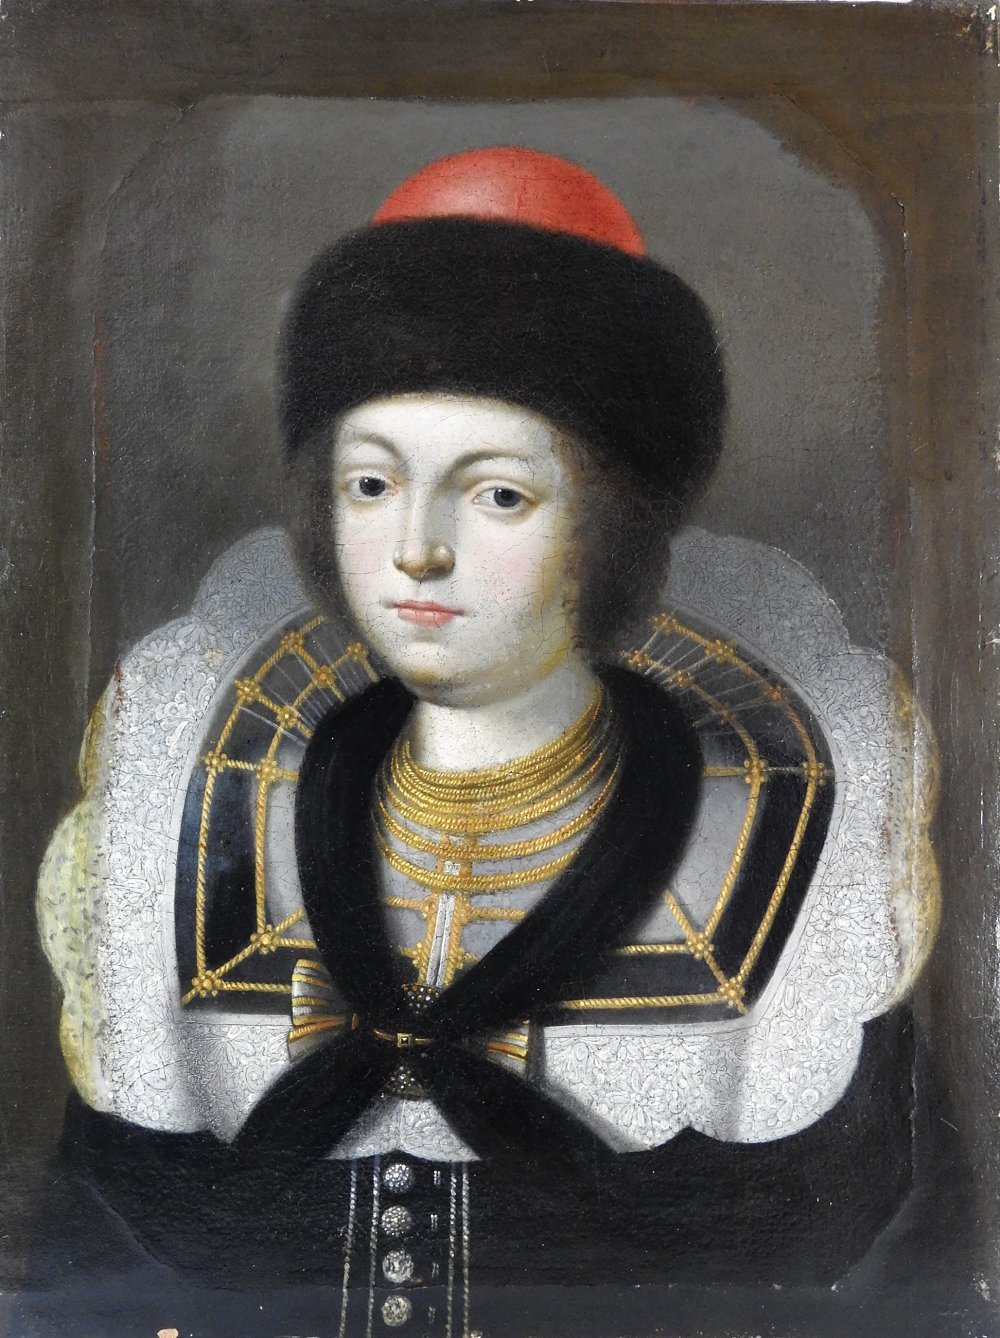 Lot 363 - Russian School, 17th century, Portrait of a young nobleman, head and shoulders,